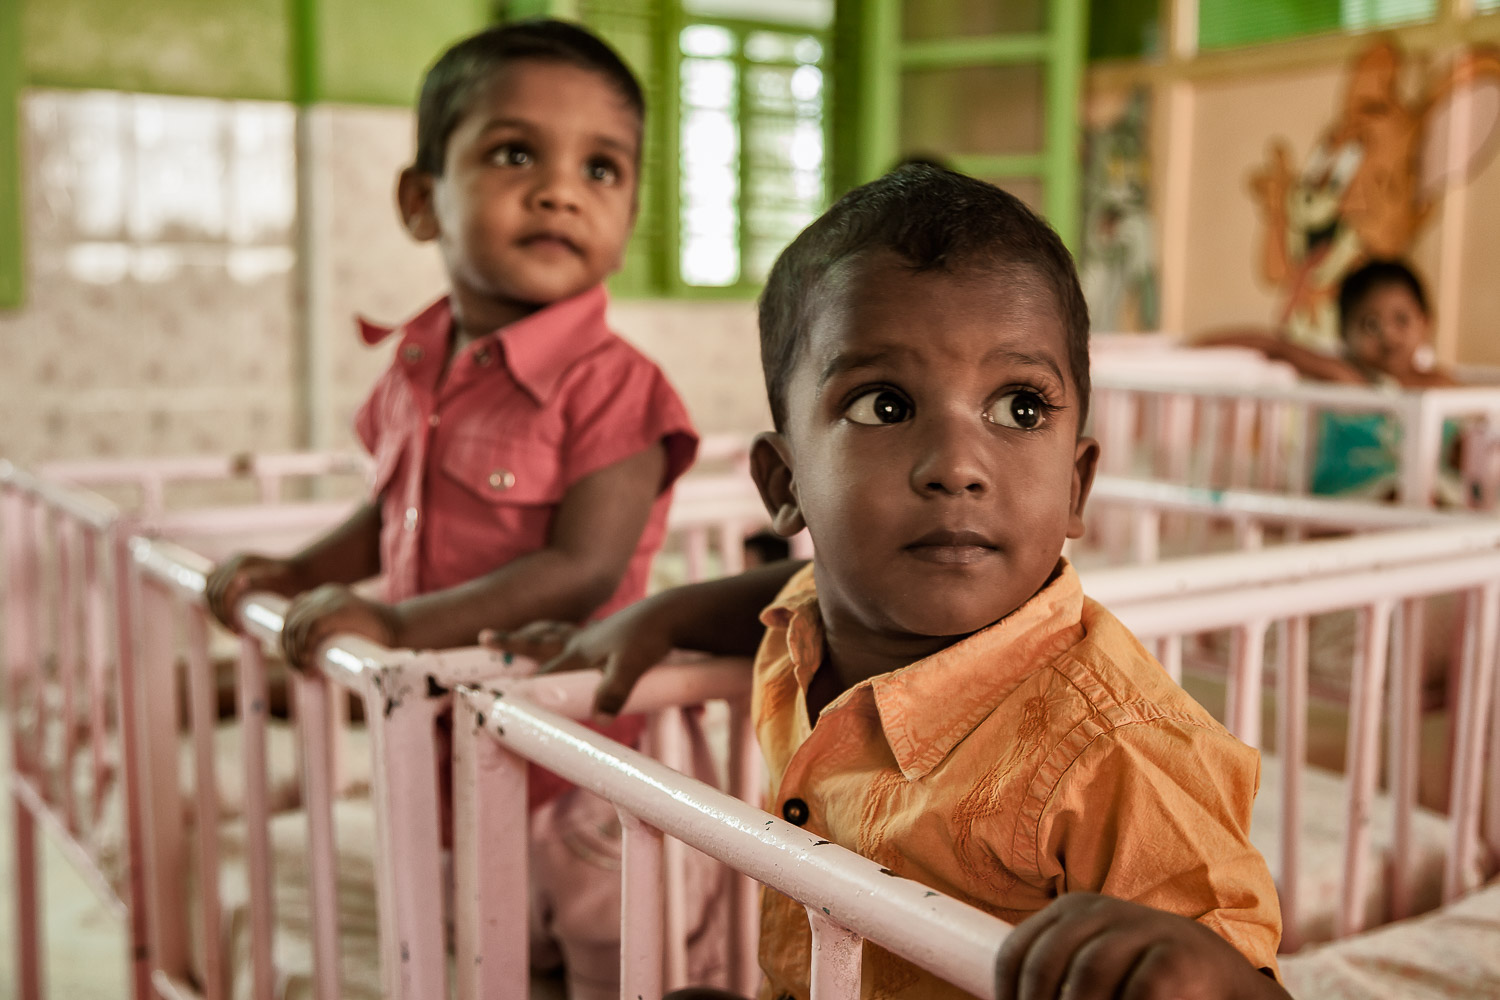 Children, just before their daytime nap, in a nursery on St. Thomas Mount in Chennai, India.